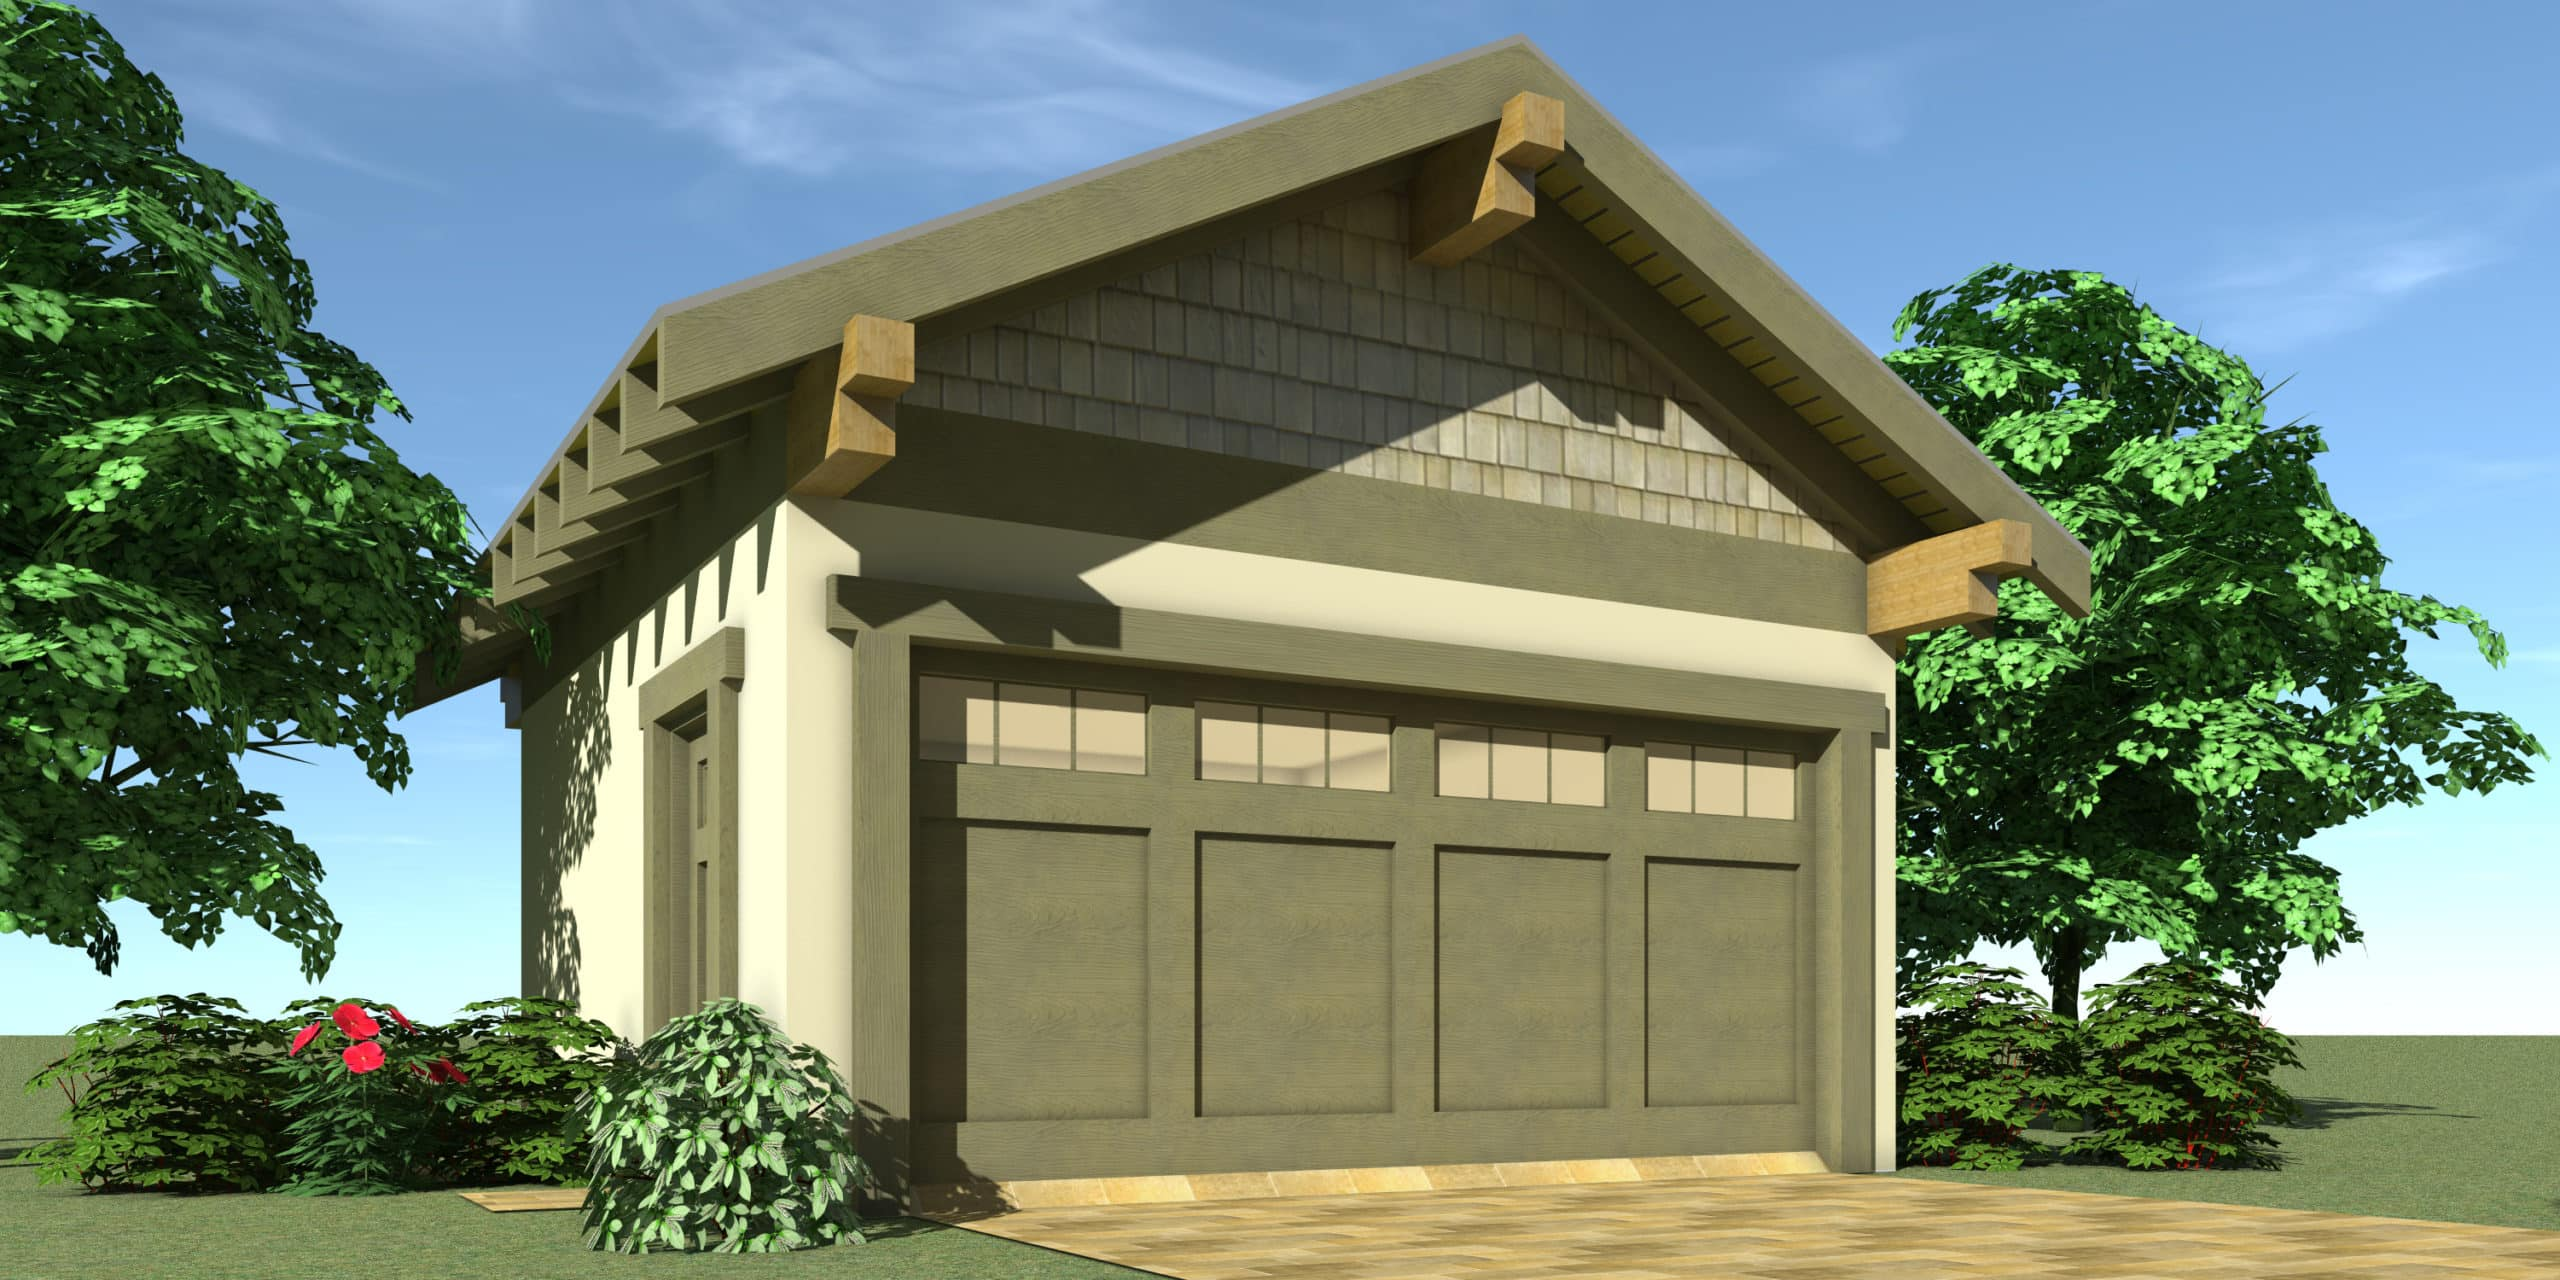 Garage - Wagoner House Plan by Tyree House Plans